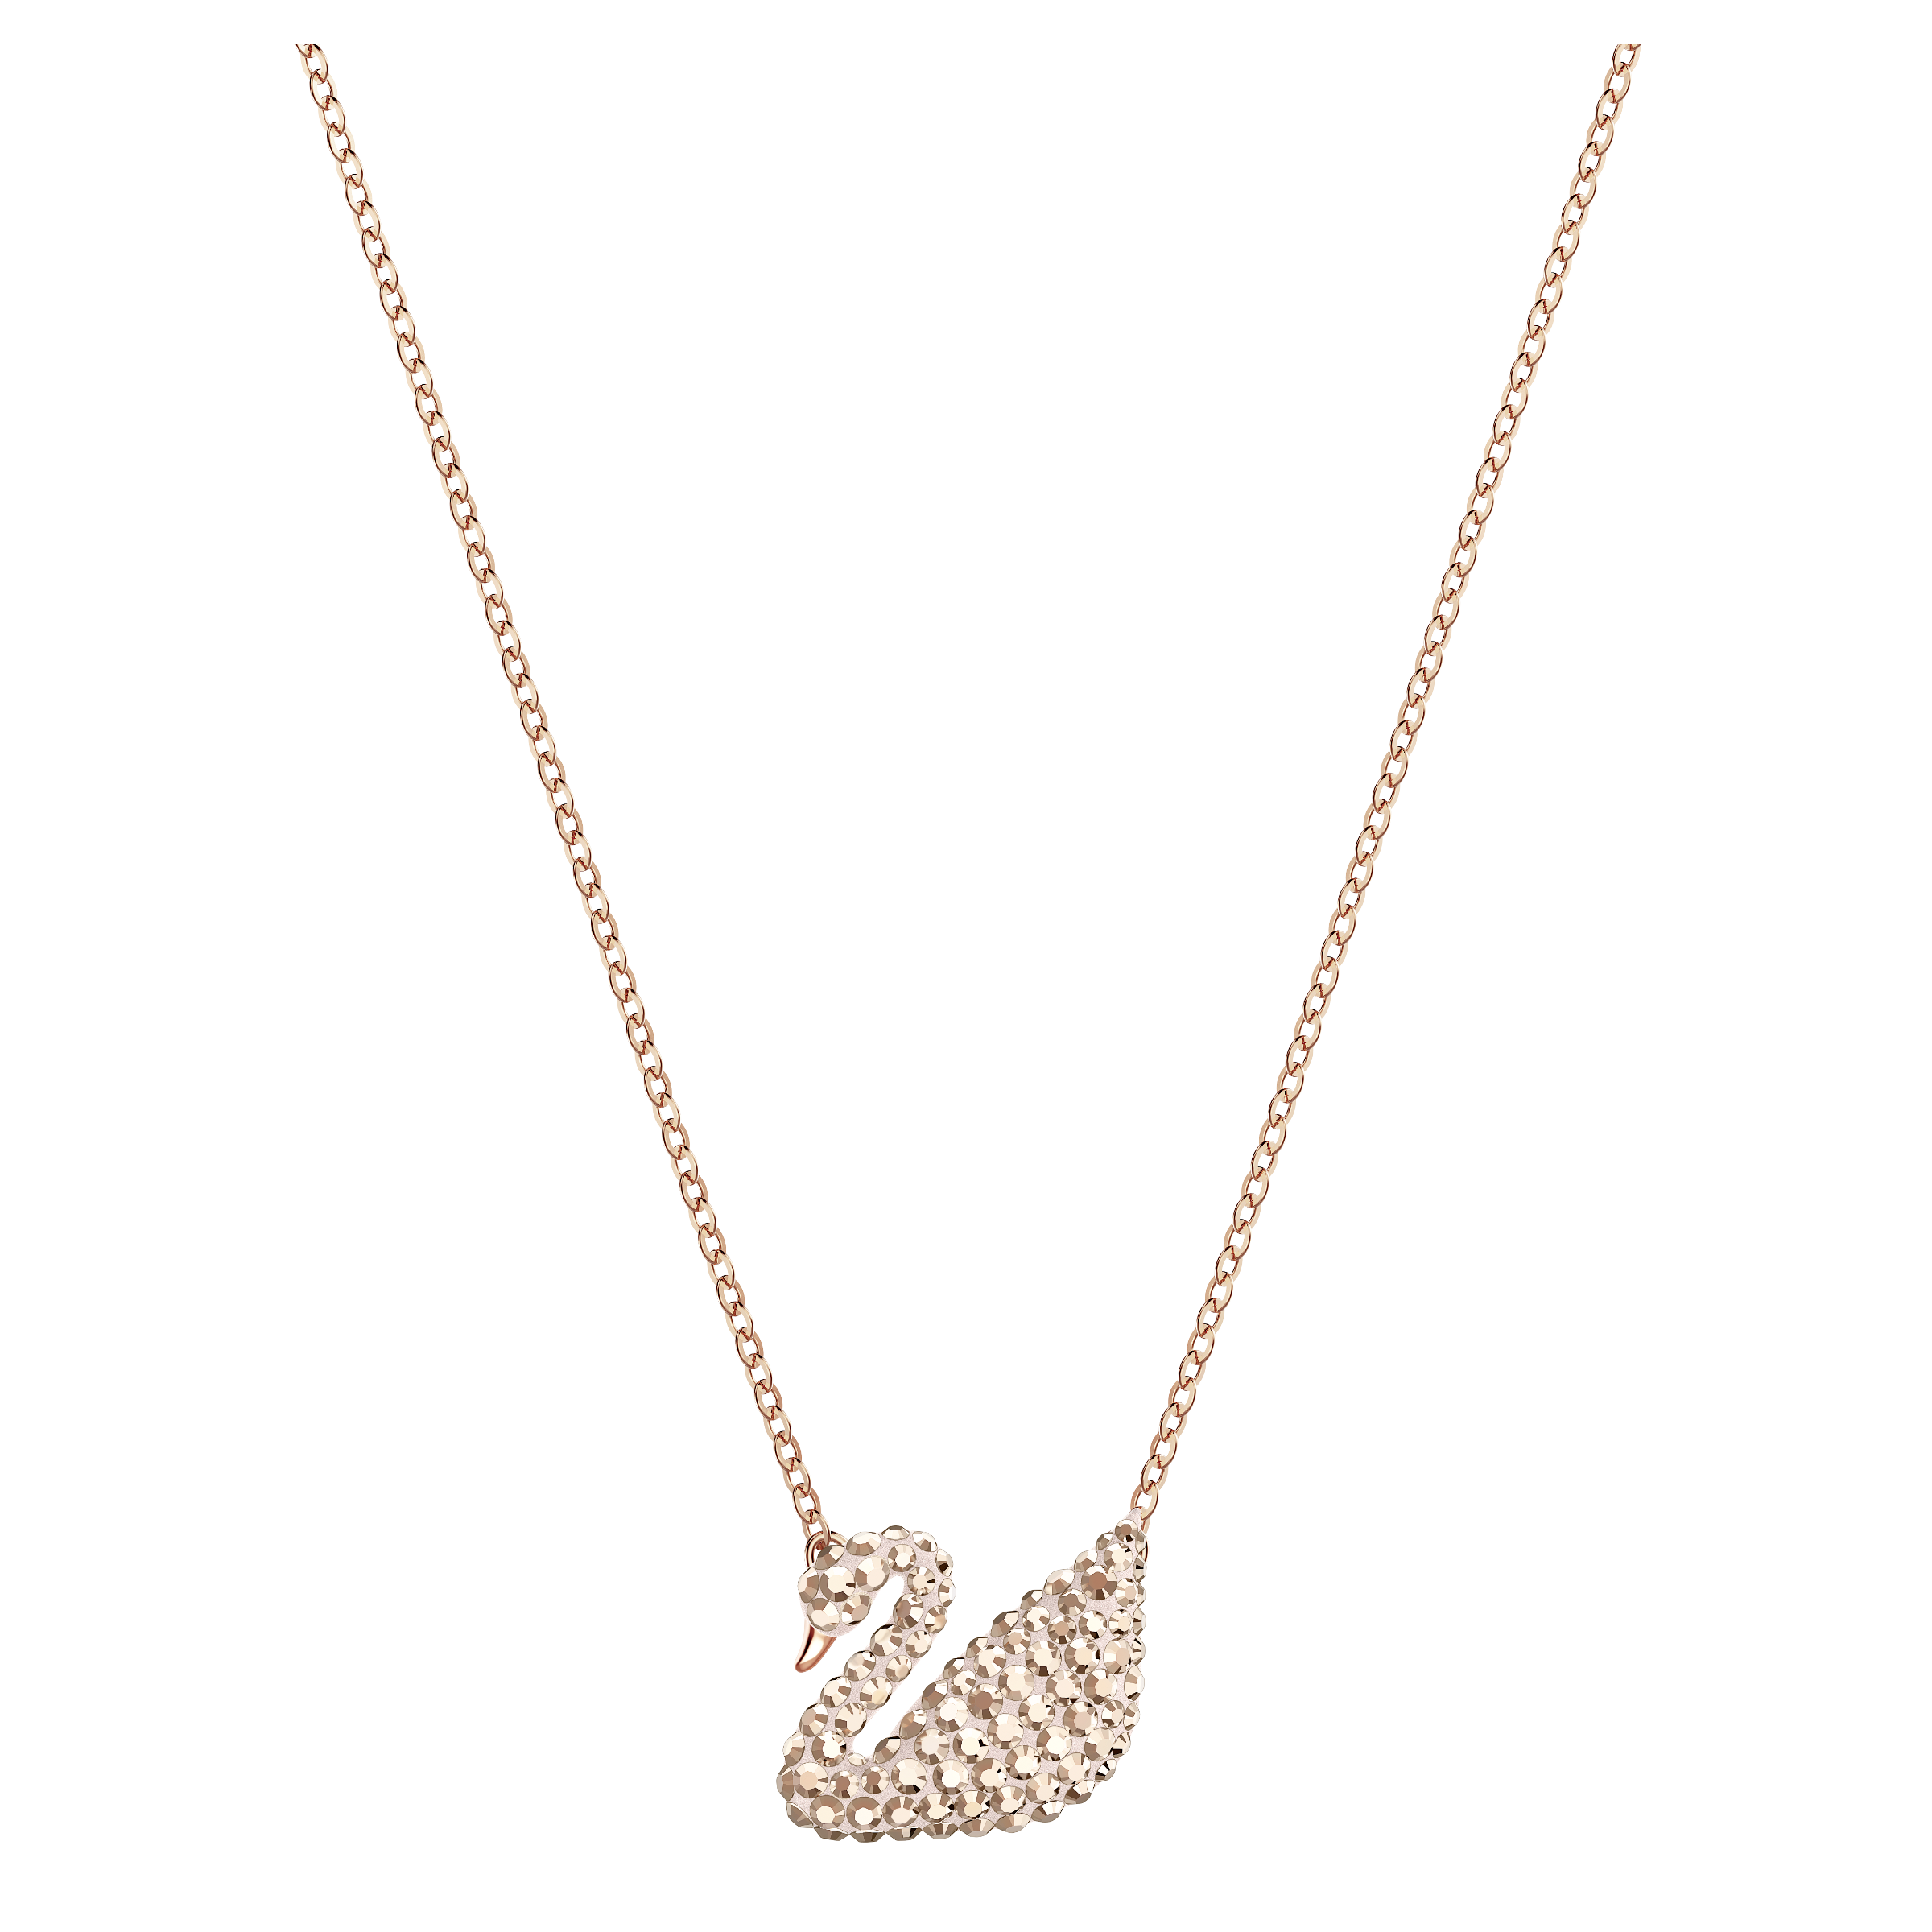 Iconic Swan Pendant, White, Rose Gold Plating